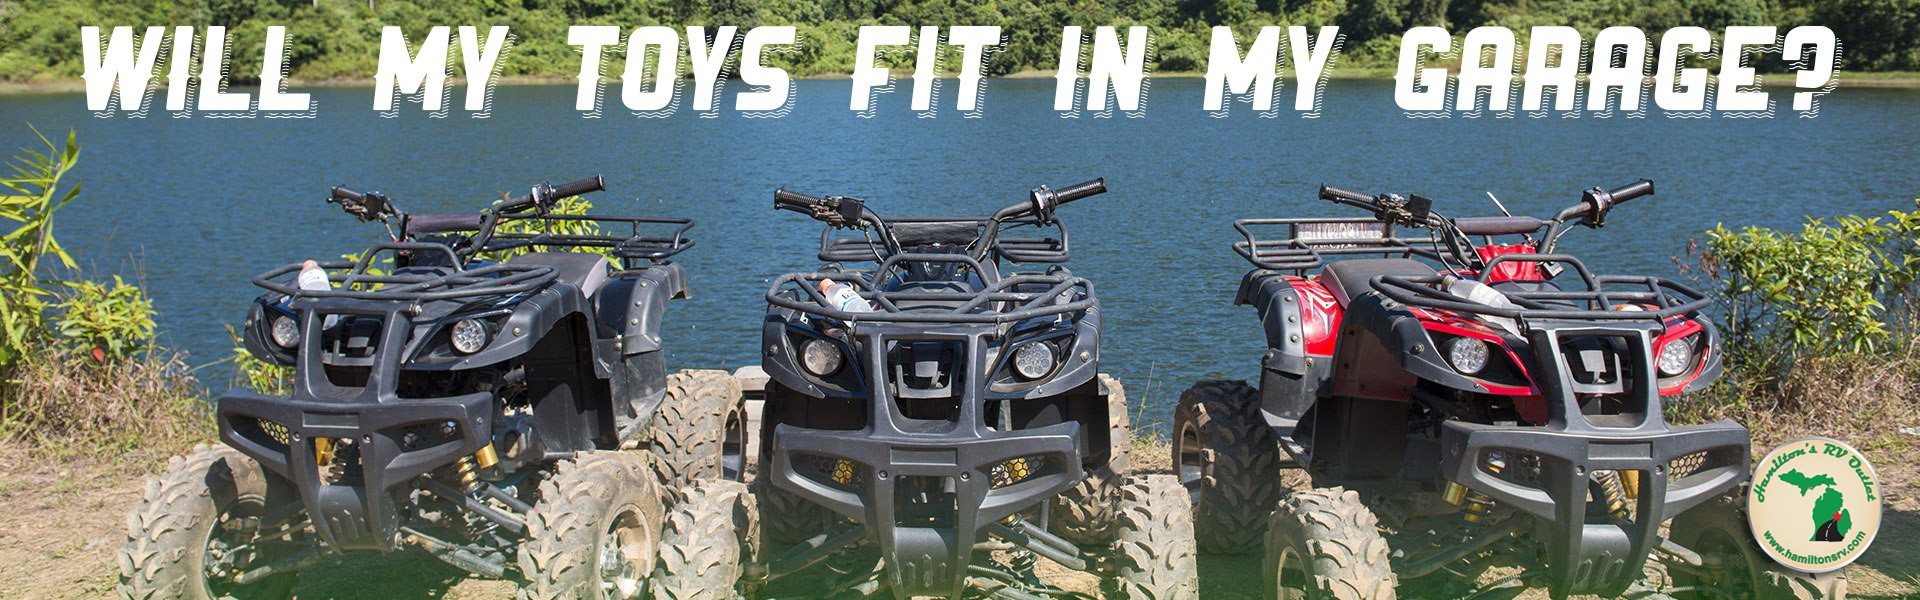 Will my toys fit in my RV Garage? four wheelers by the lake Banner